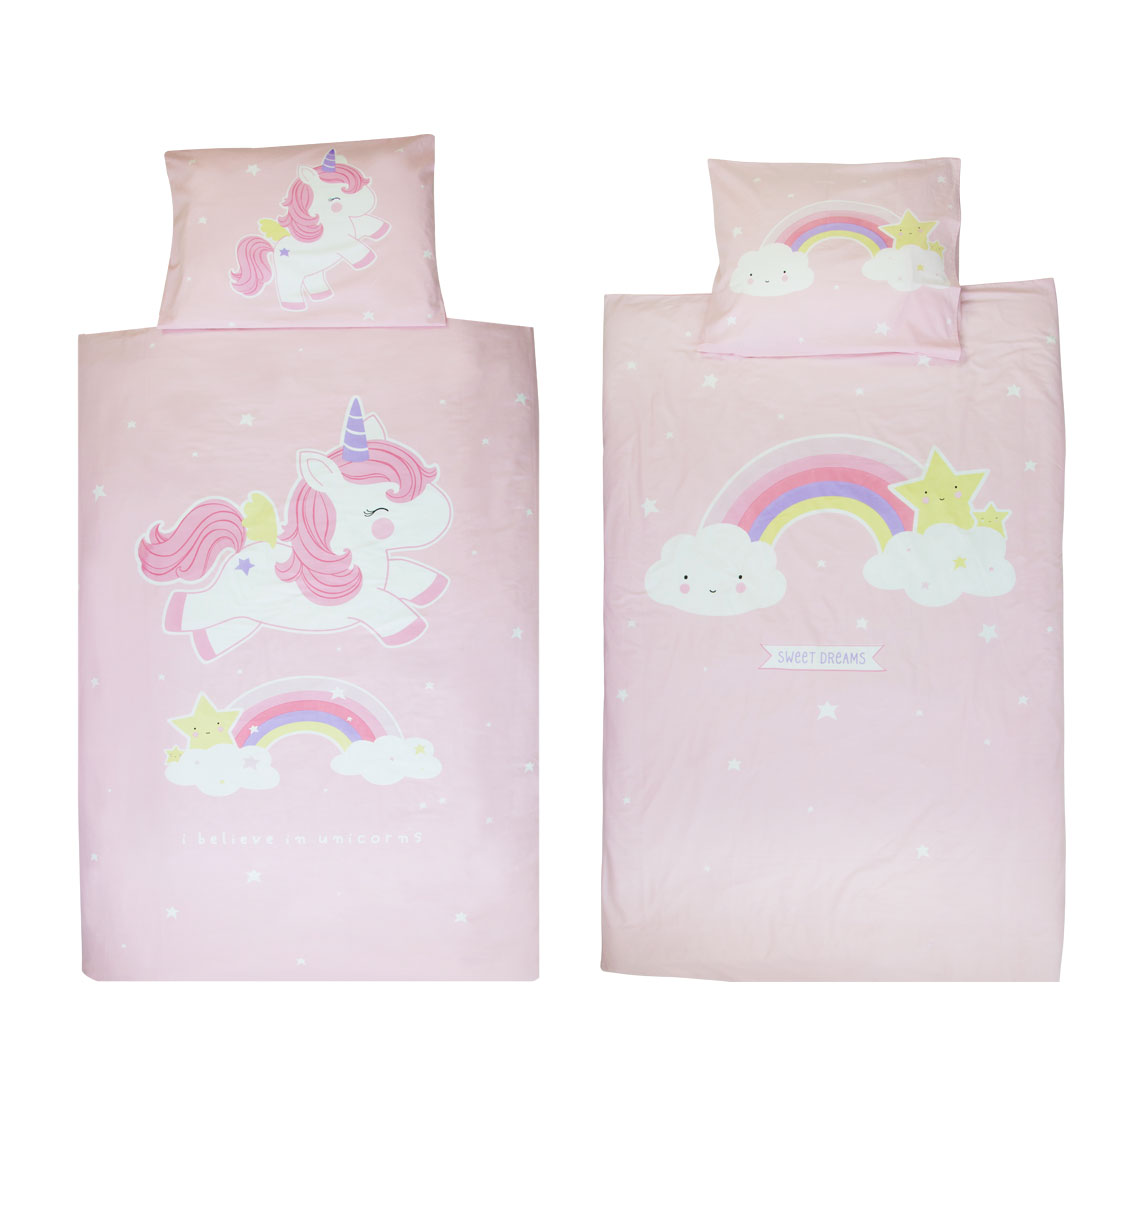 Funda edredón unicornio A Little-Betina Shop_alzado